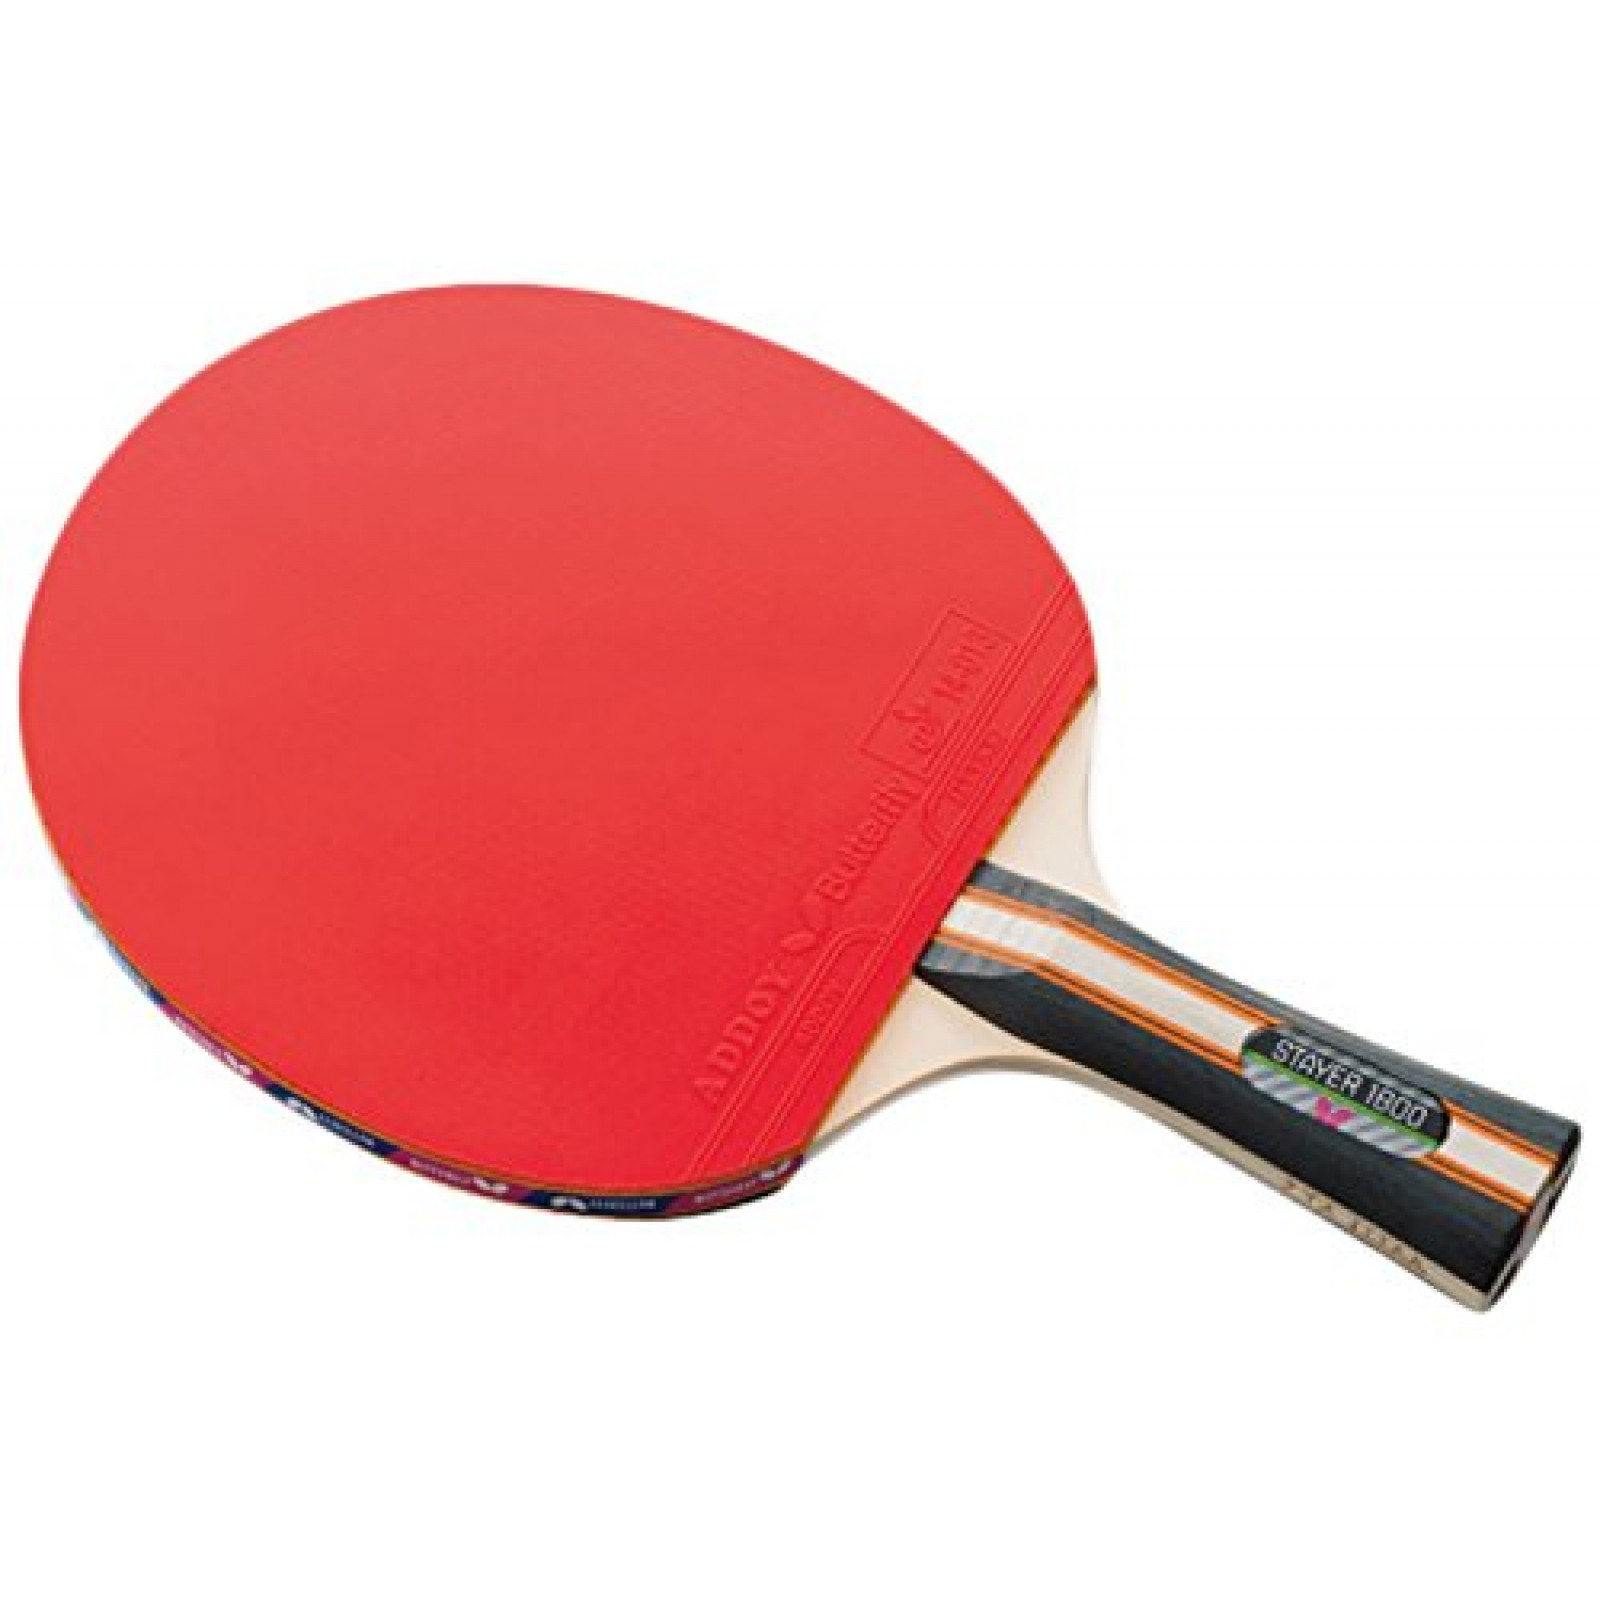 Awesome butterfly ping pong ideas - Butterfly table tennis official website ...